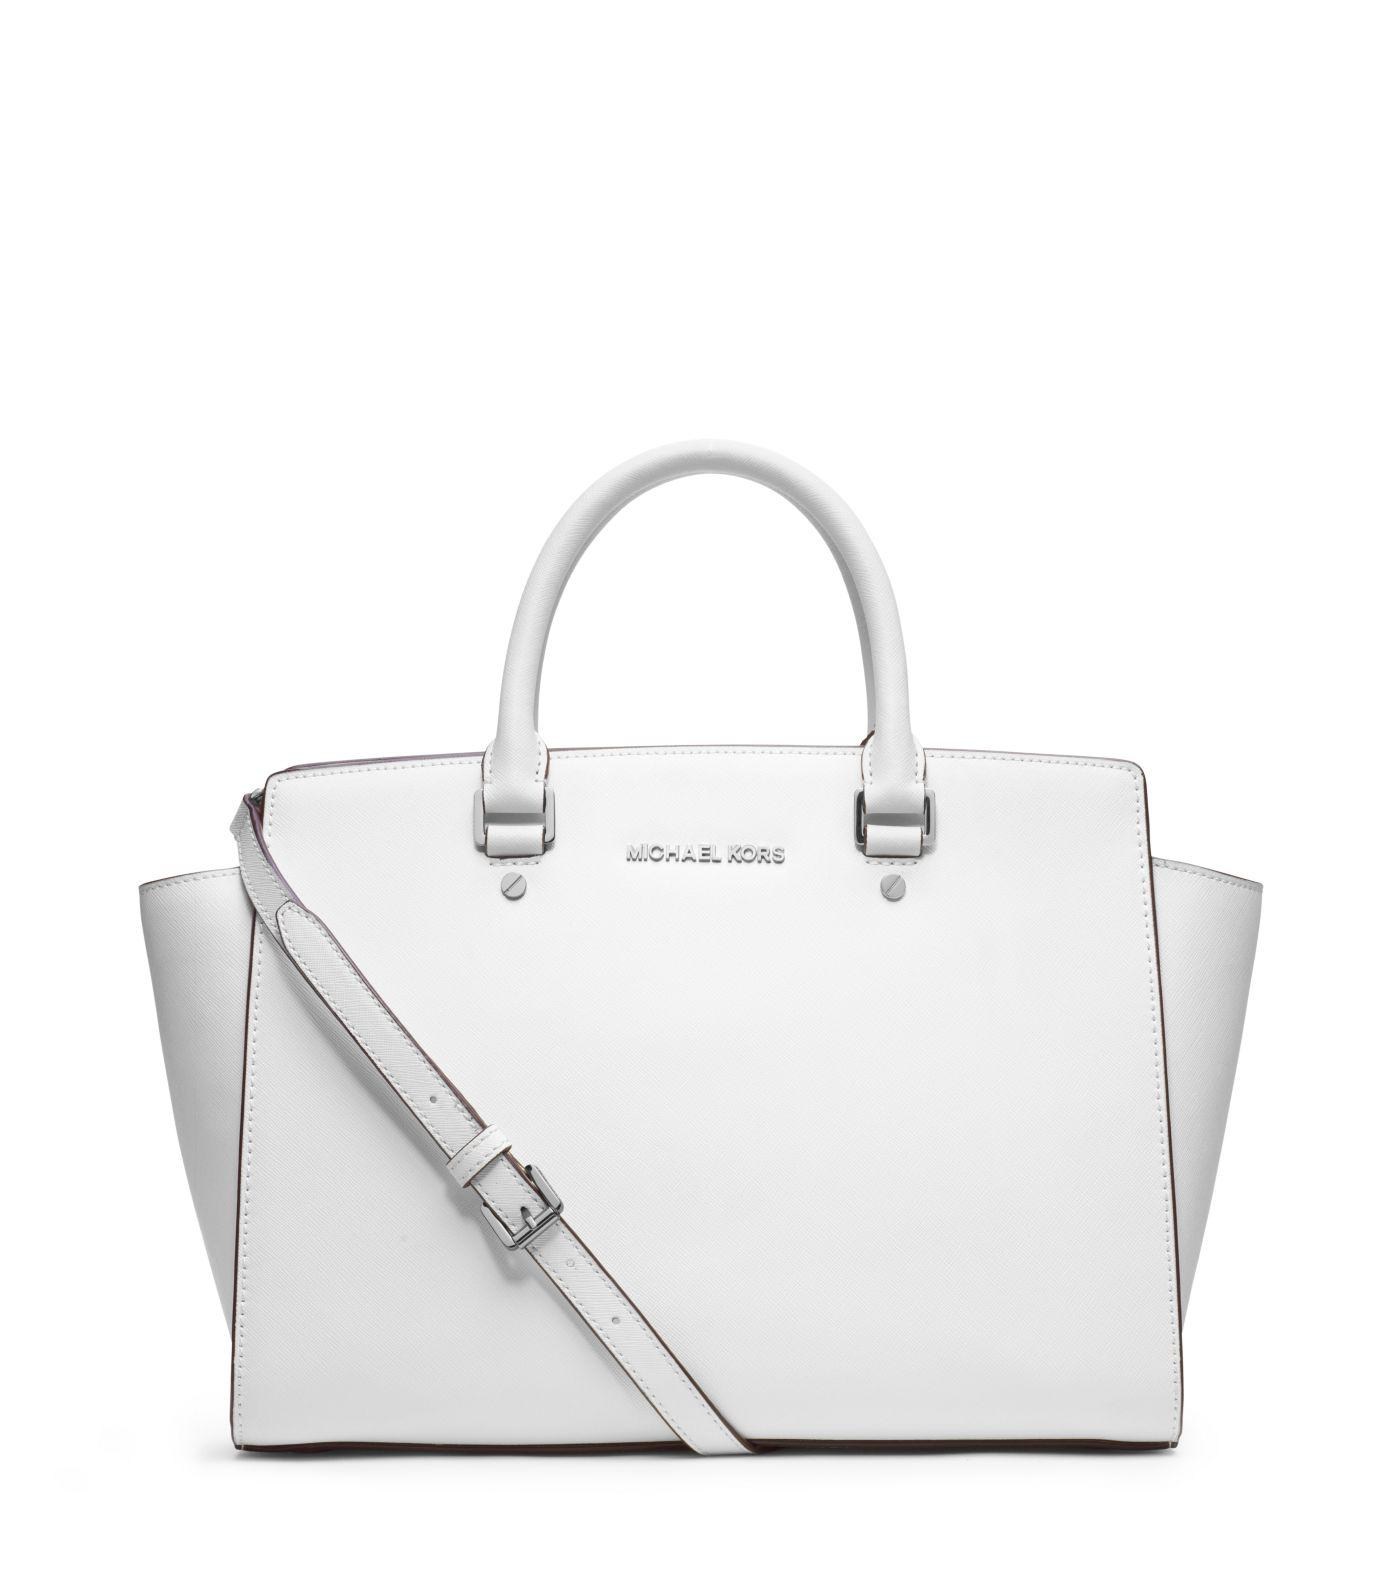 ... get michael kors selma large saffiano leather satchel in white lyst  d1bb2 f2388 533d22222adf6